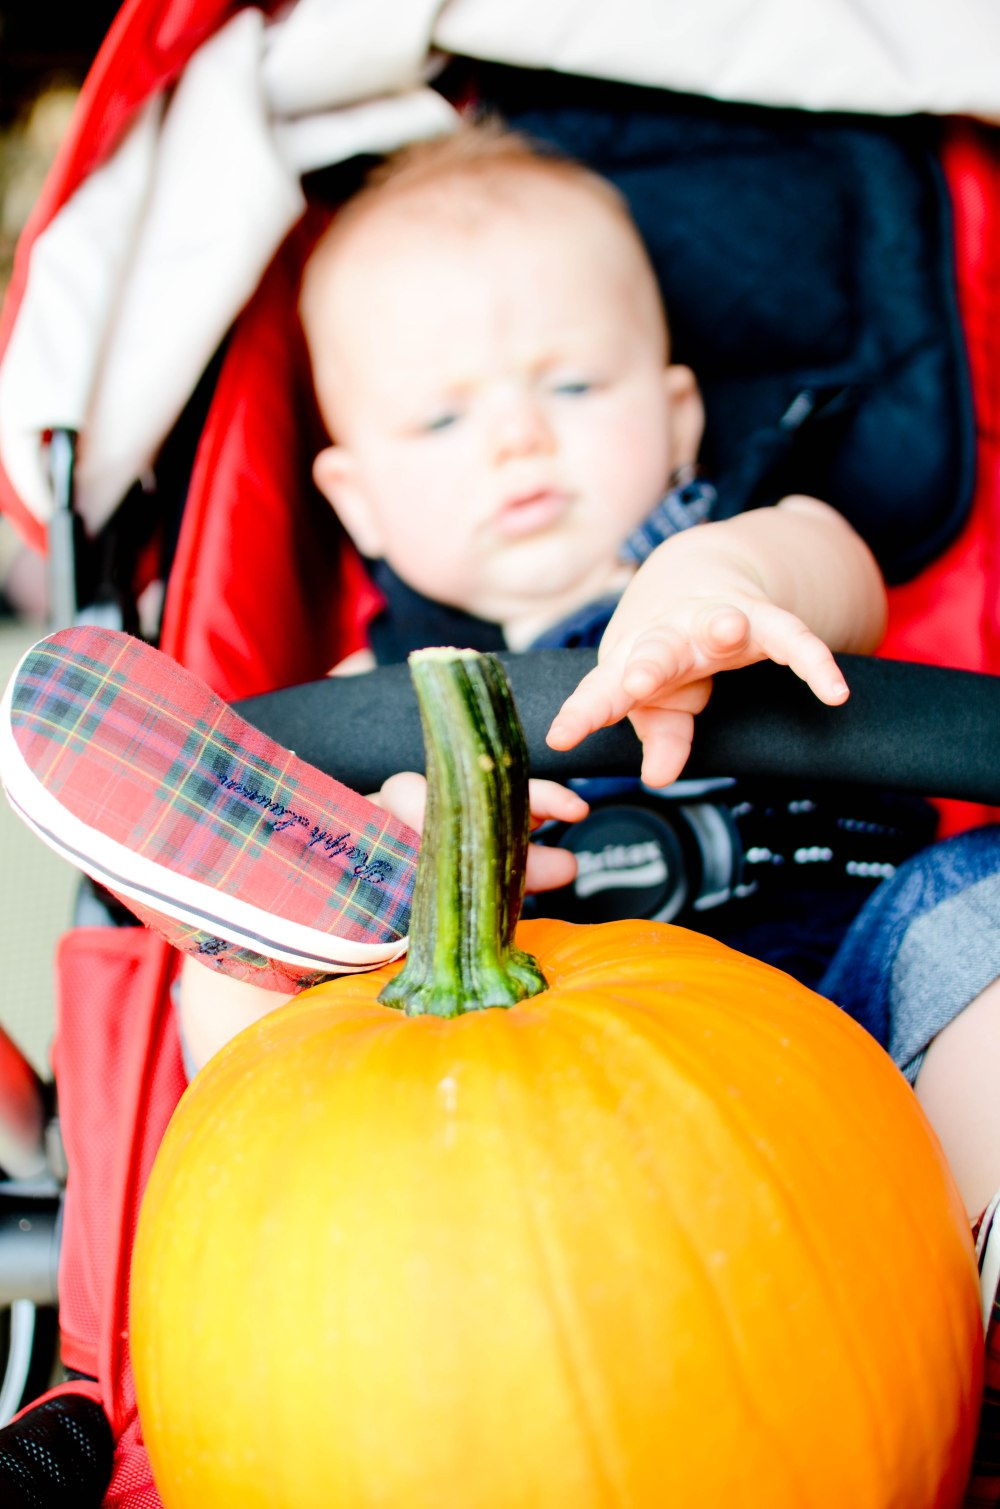 Pumpkin patch and ralph lauren shoes go hand and hand.